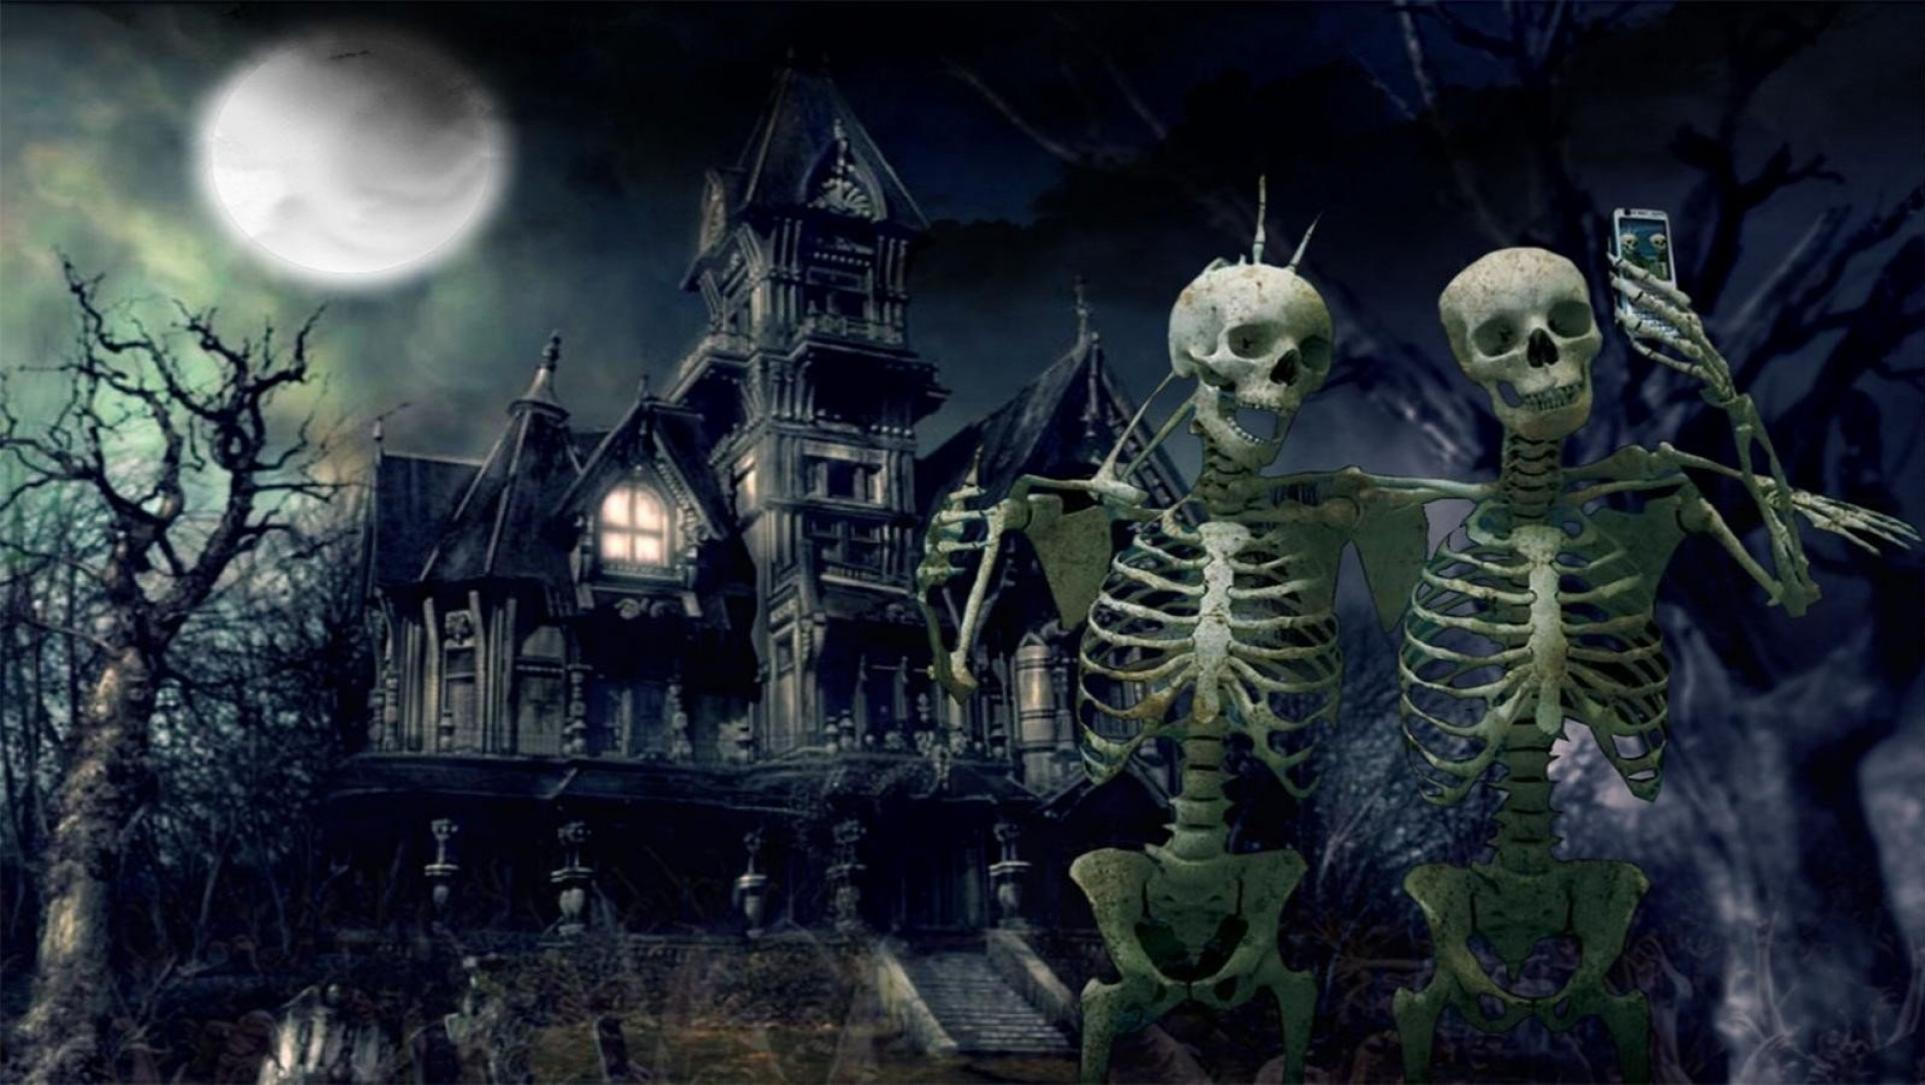 Scary Halloween stories for kids and adults online These short spooky scary ghost stories are perfect for reading at your Halloween party Tap Tap Tap Halloween